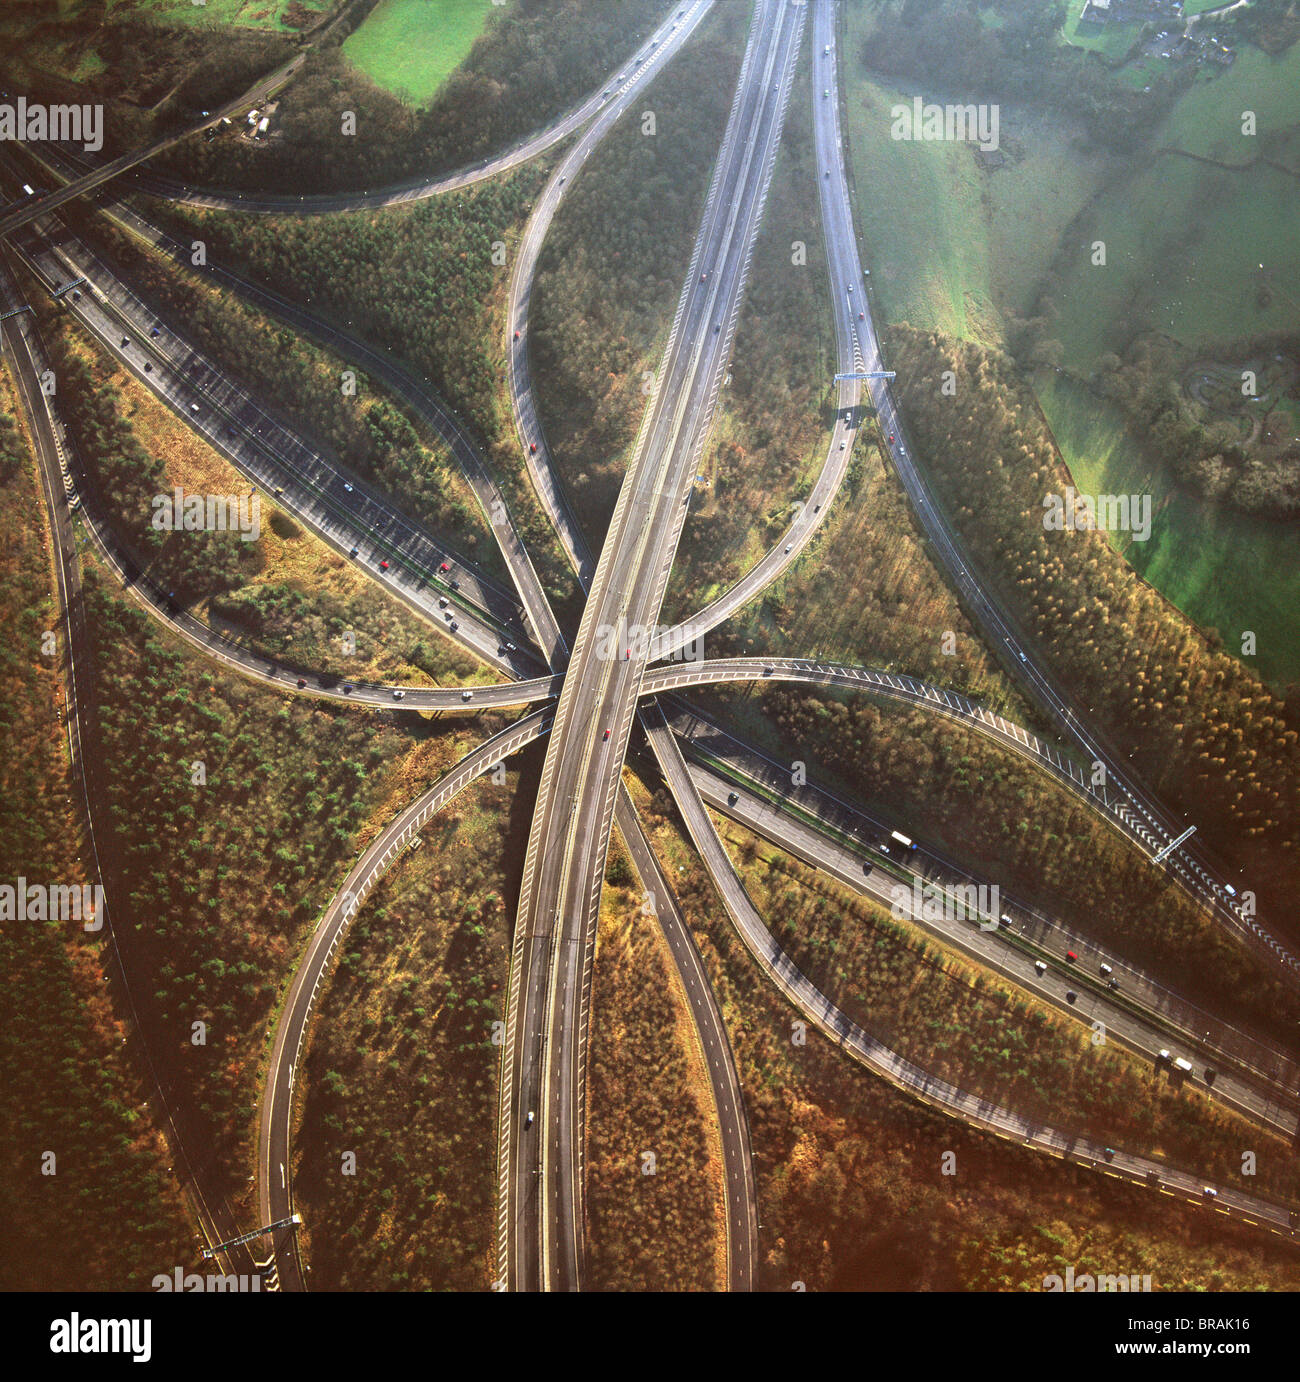 Aerial image of M25 and M23 Motorway Junction, Surrey, England, United Kingdom, Europe - Stock Image